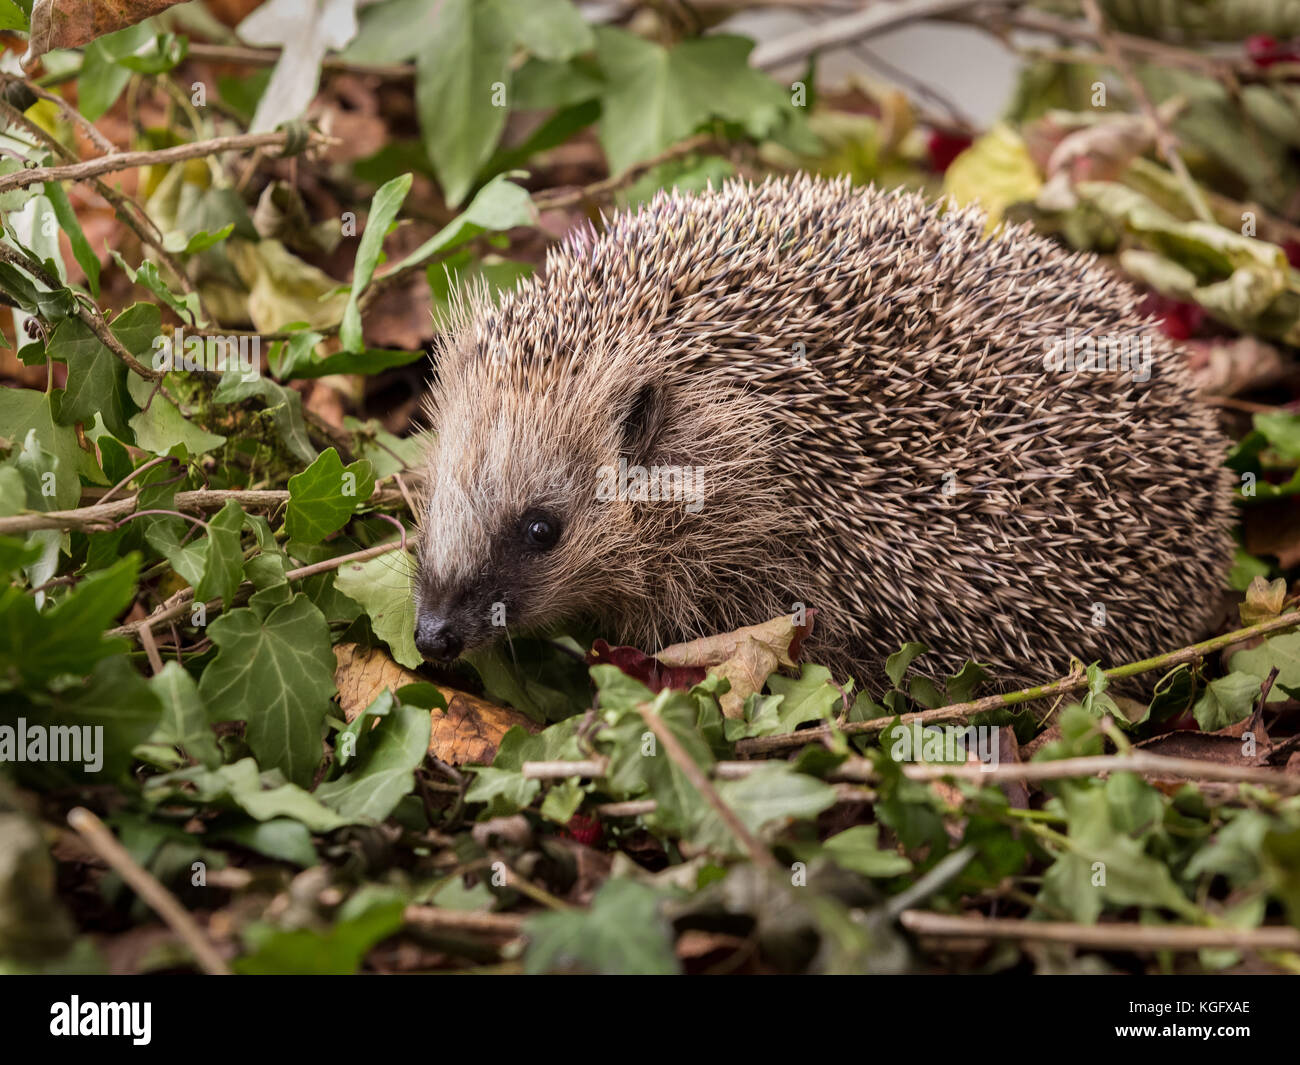 European hedgehog, Erinaceus europaeus, in green leaves of ivy - Stock Image